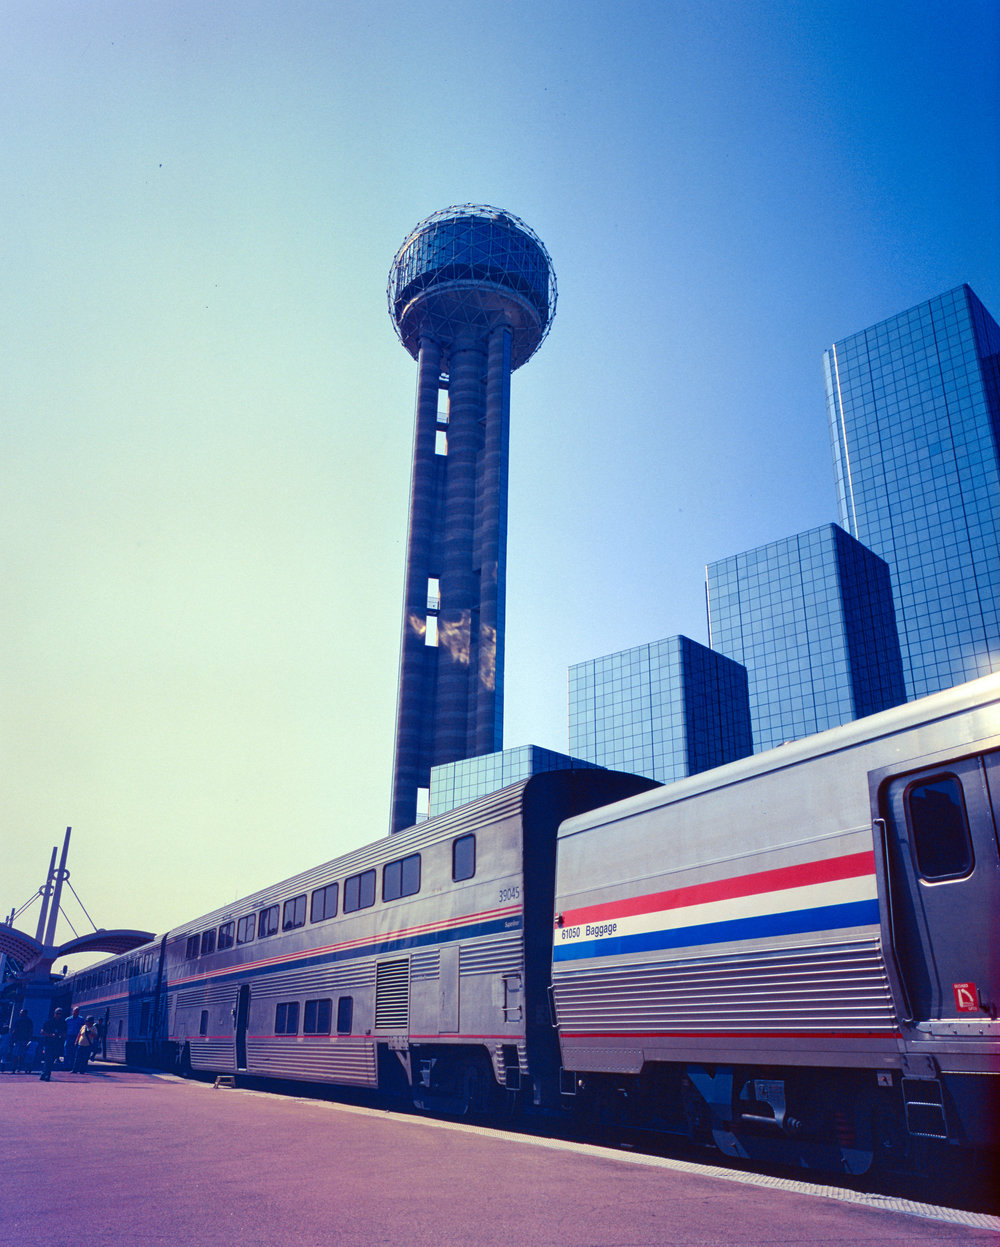 Dallas Station Fuji GF670w | Kodak E200 (really bad color shifts with this roll)